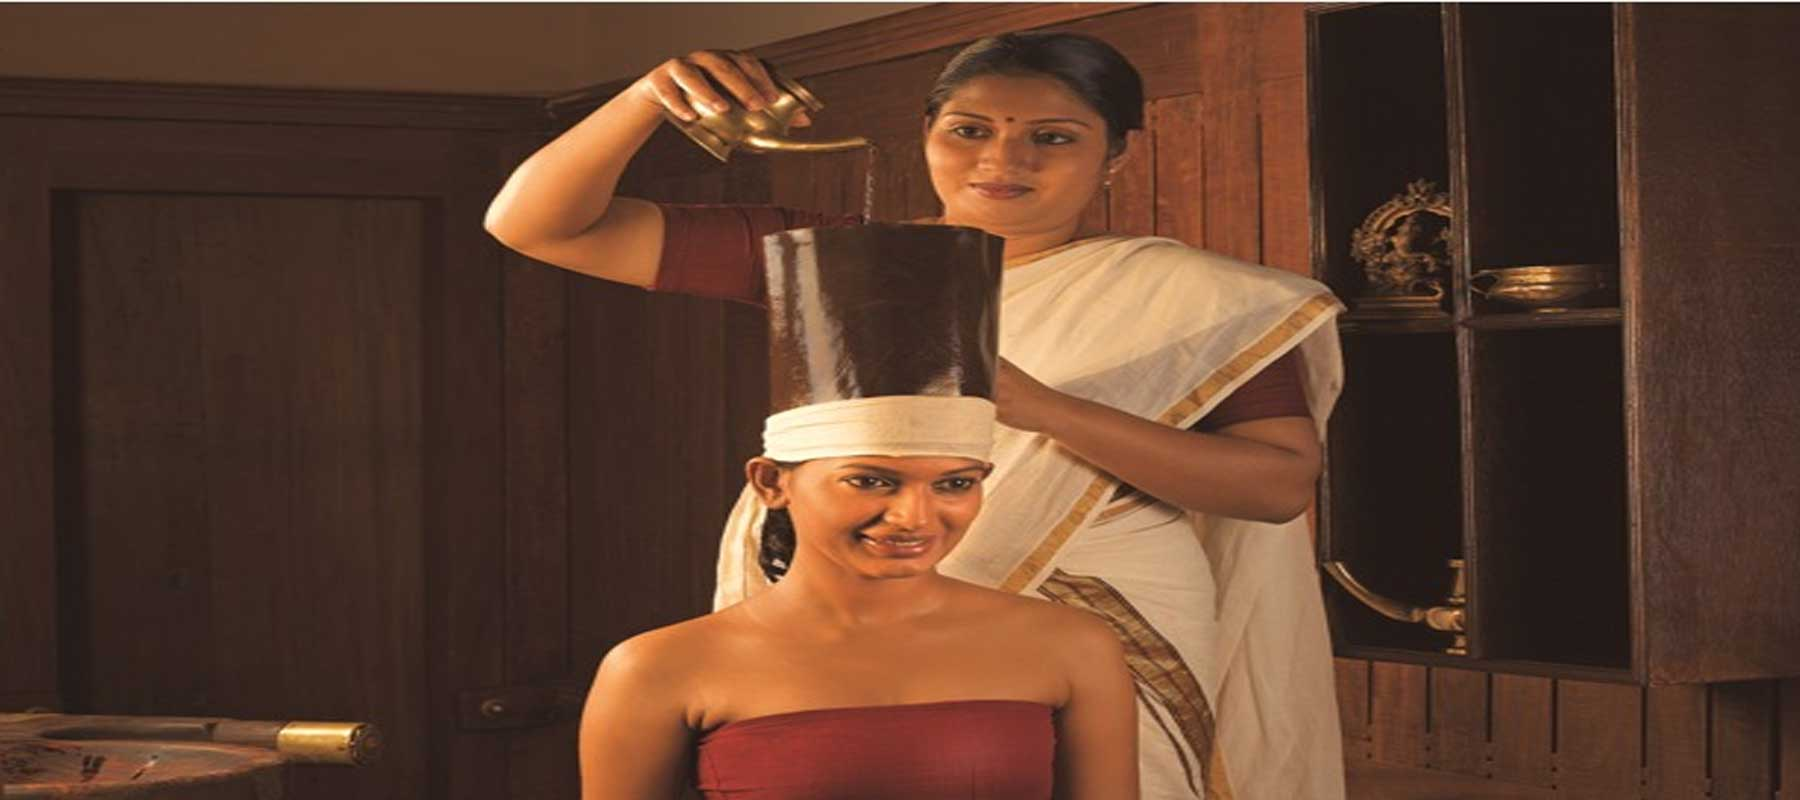 Kerala-Massage-Center--in-Qatar-shirovasthi--shirovasthi